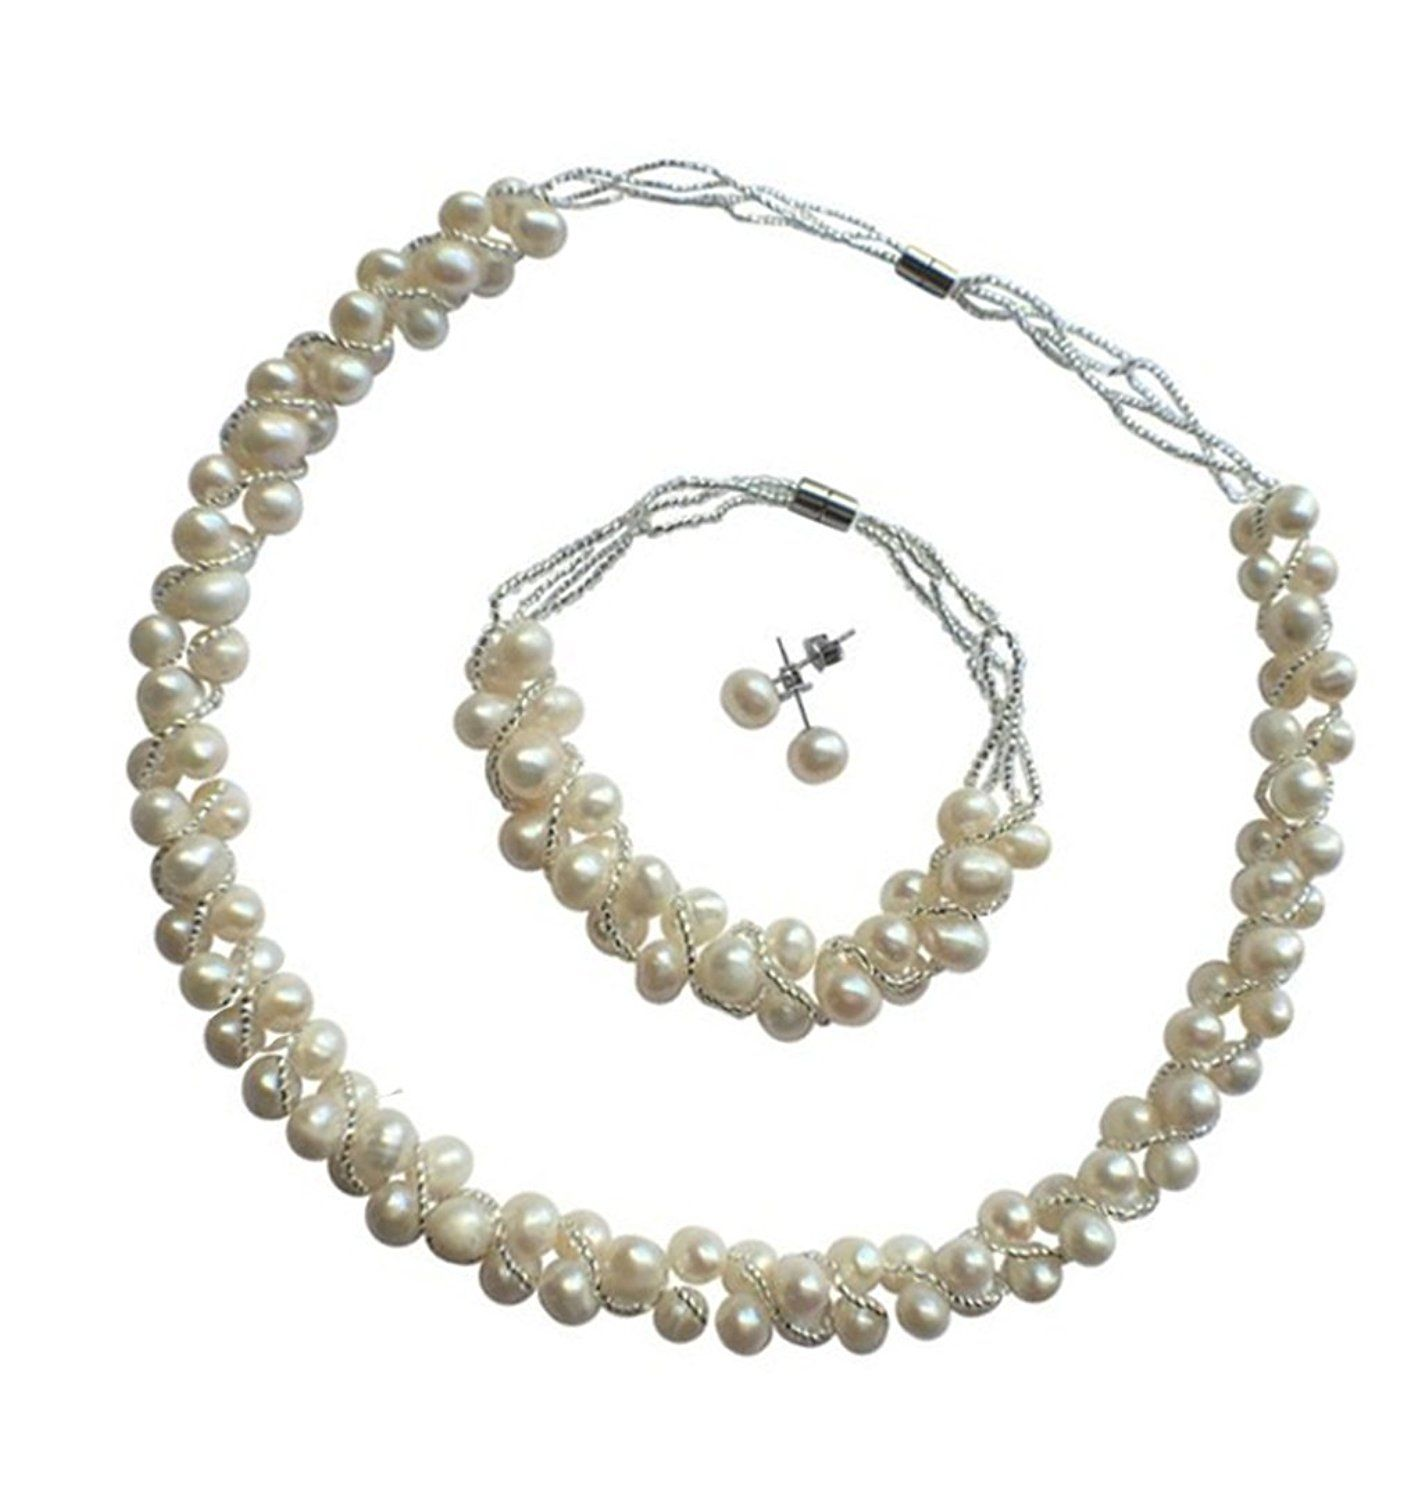 Treasurebay Elegant Natural Freshwater Pearl Jewellery Set Necklace Bracelet And Earrings With Magnetic Clasps